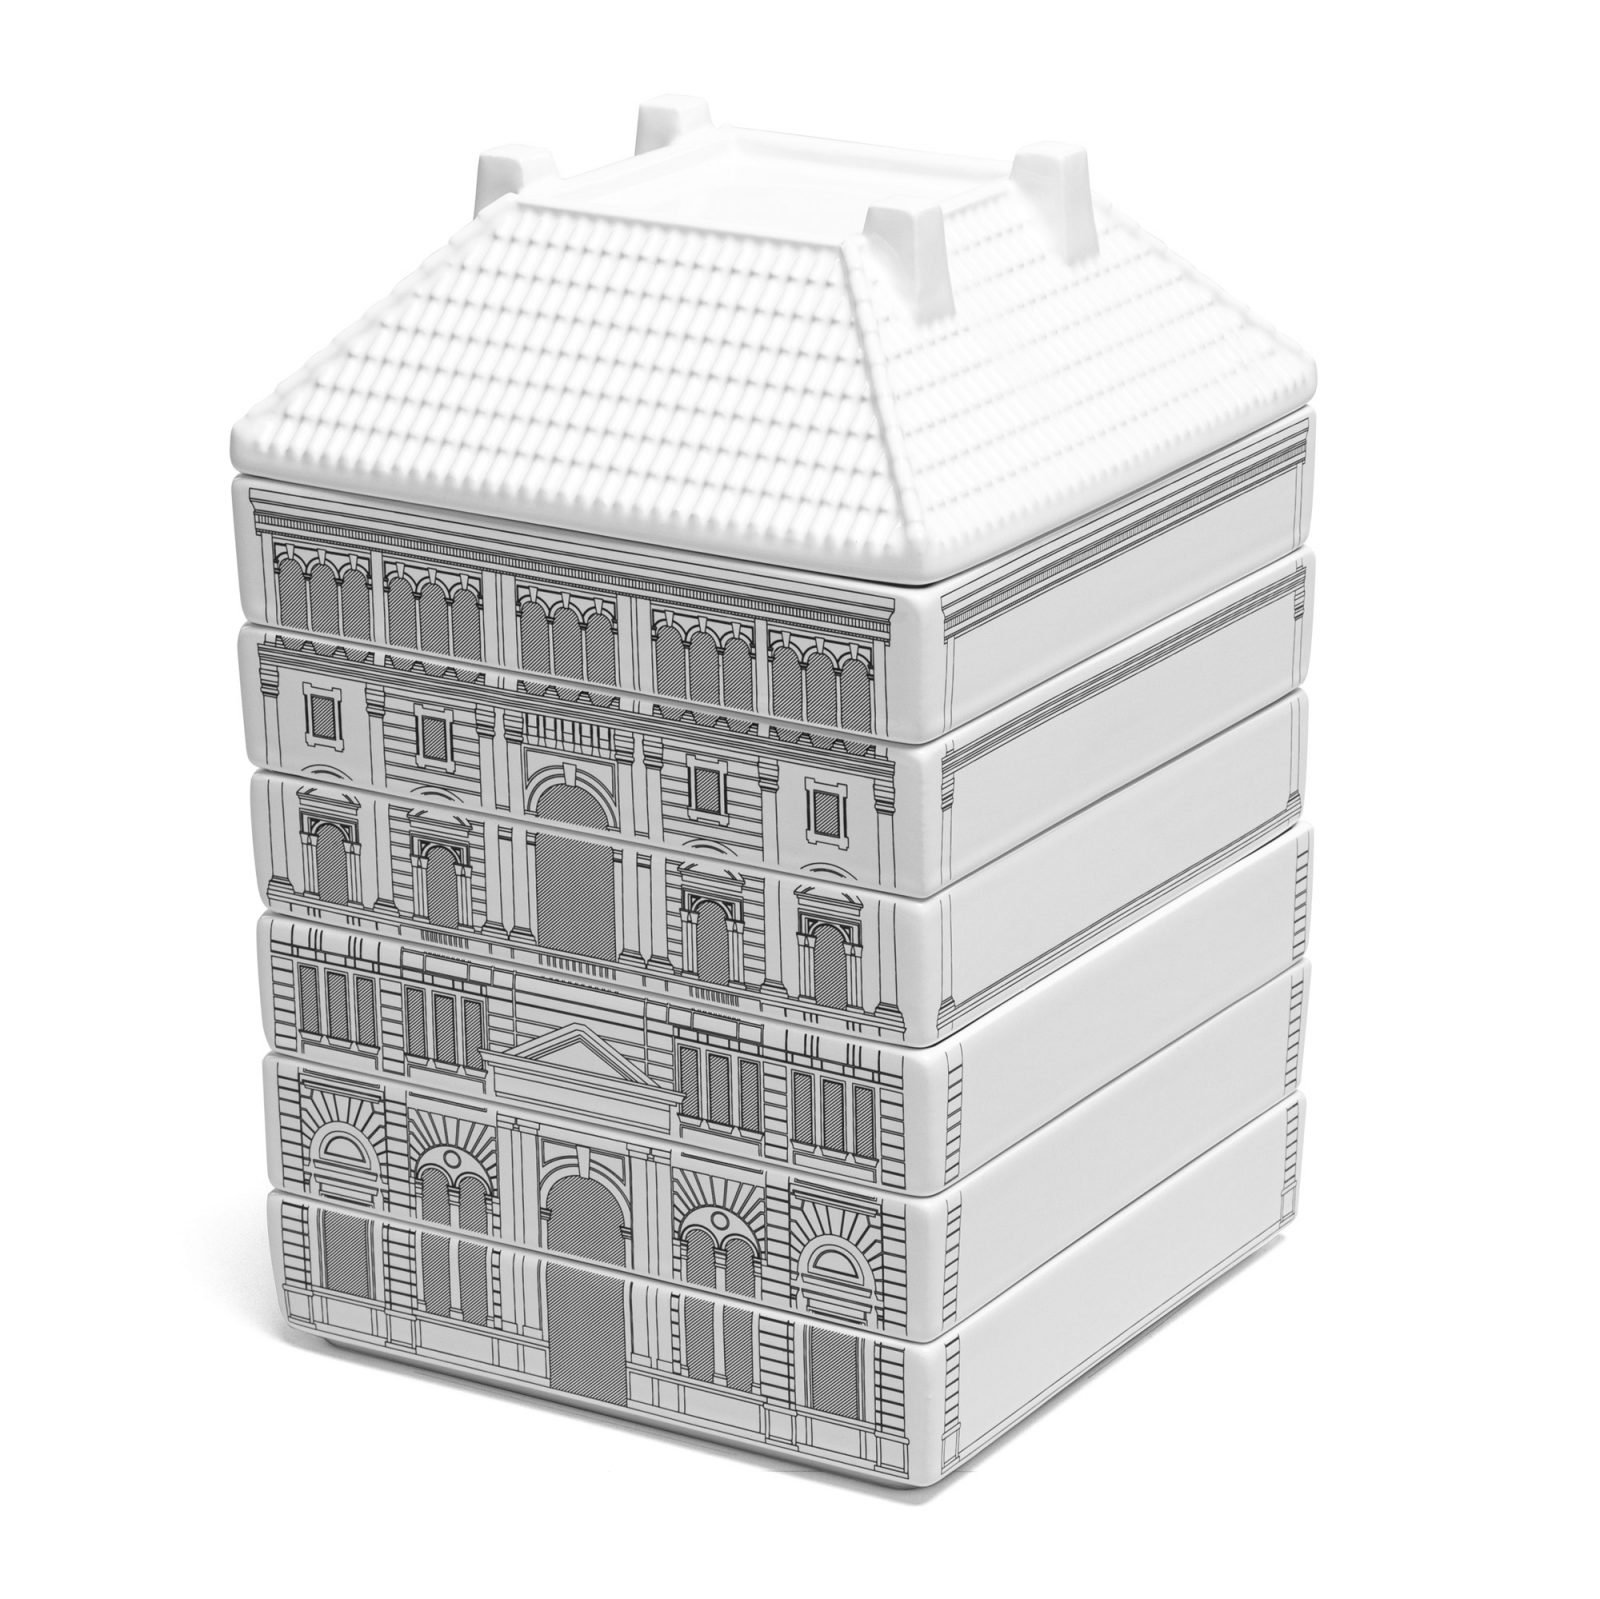 seletti-palace-collection-governo-palace-2